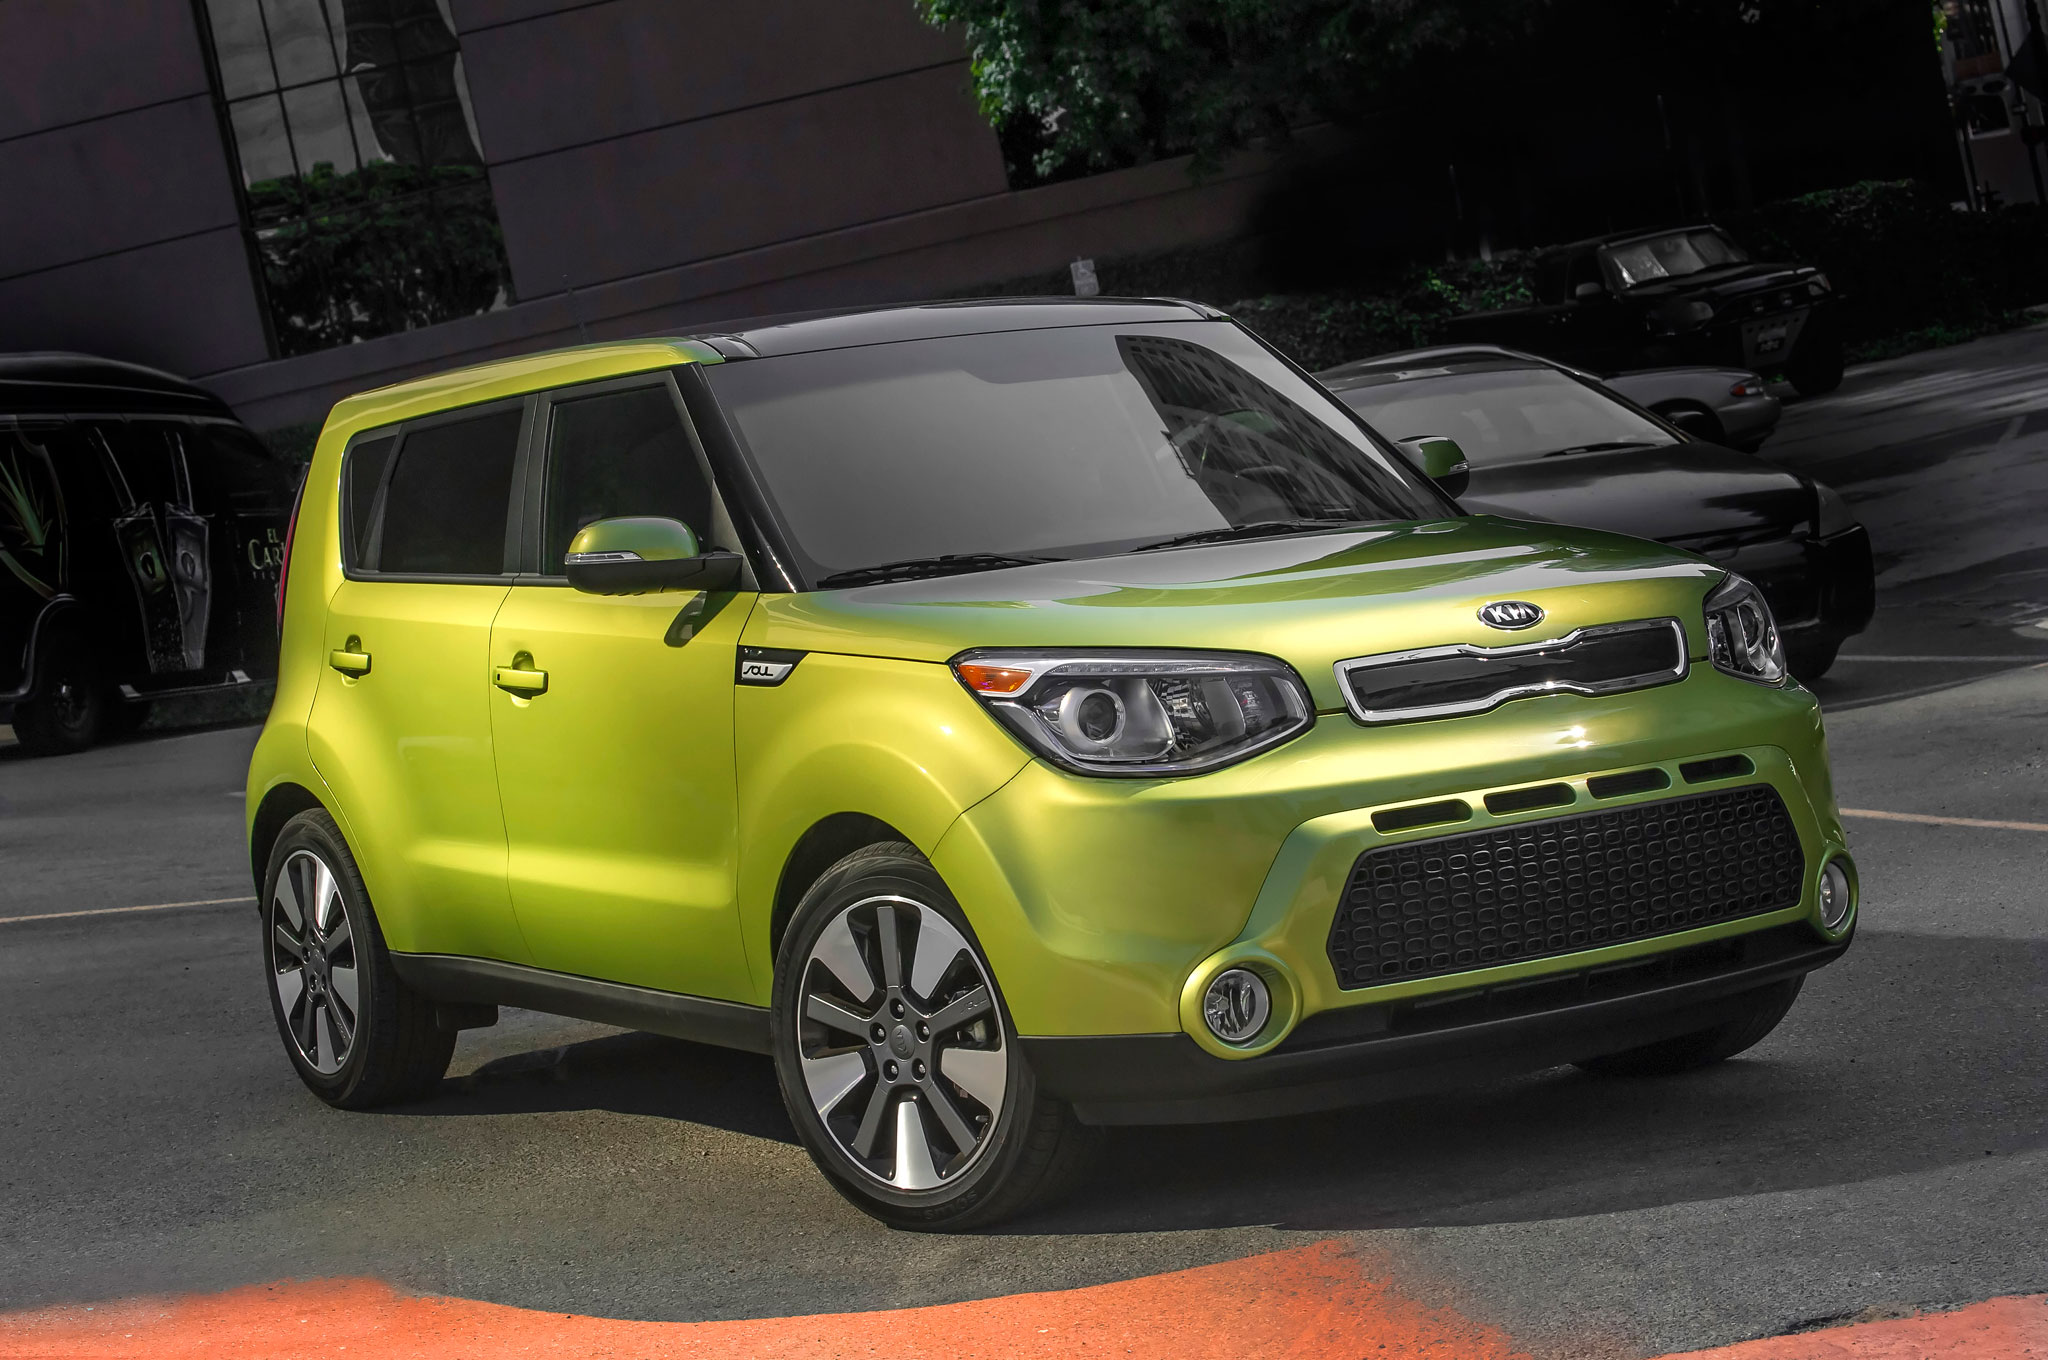 nhtsa gives 2014 kia soul 5 star safety rating automobile magazine. Black Bedroom Furniture Sets. Home Design Ideas